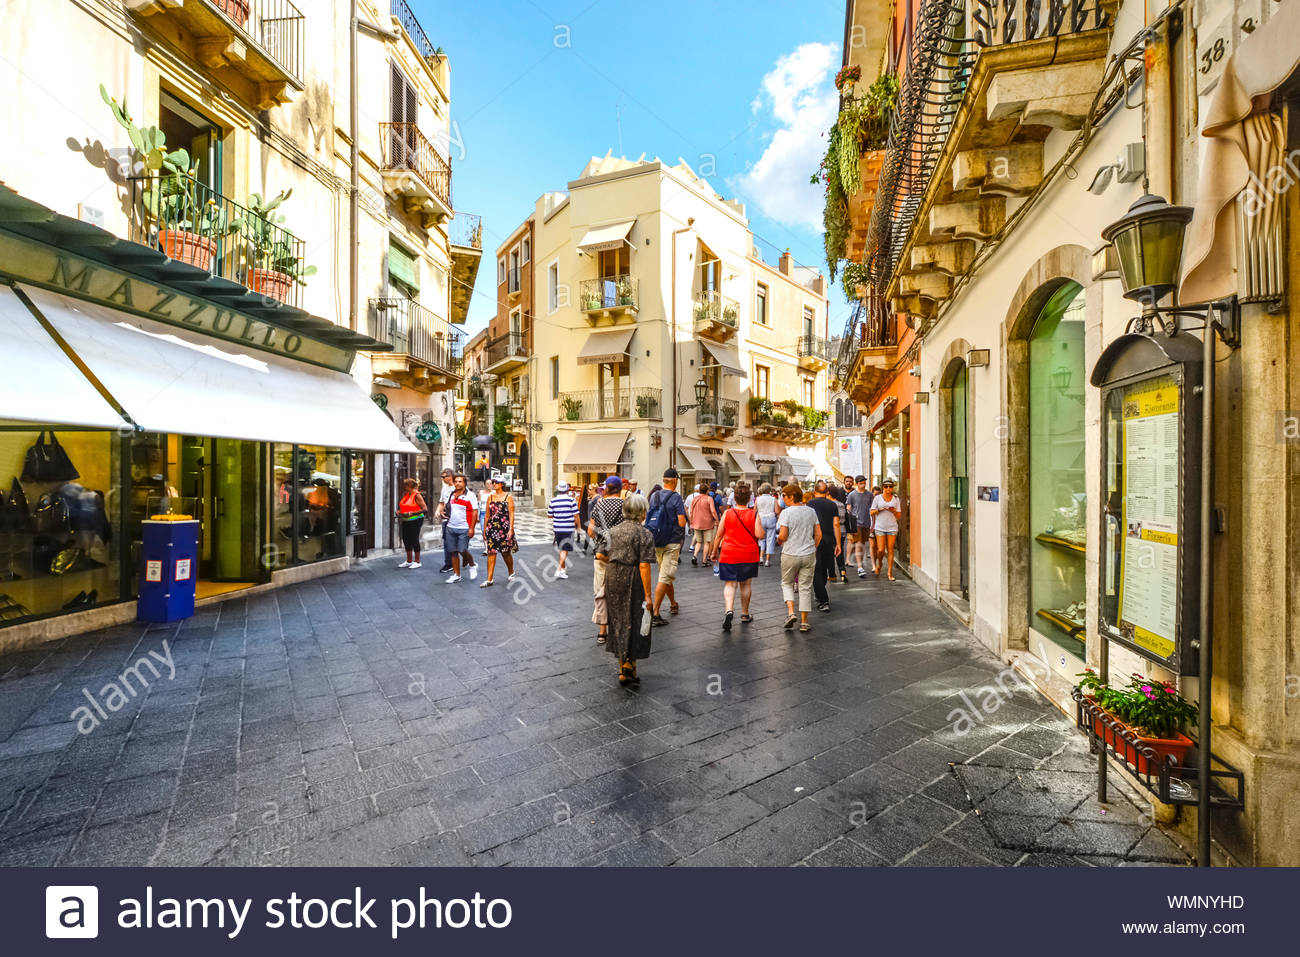 Tourists shop and wander the Corso Umberto main street in the coastal resort city of Taormina Italy on the Italian Mediterranean Stock Photo